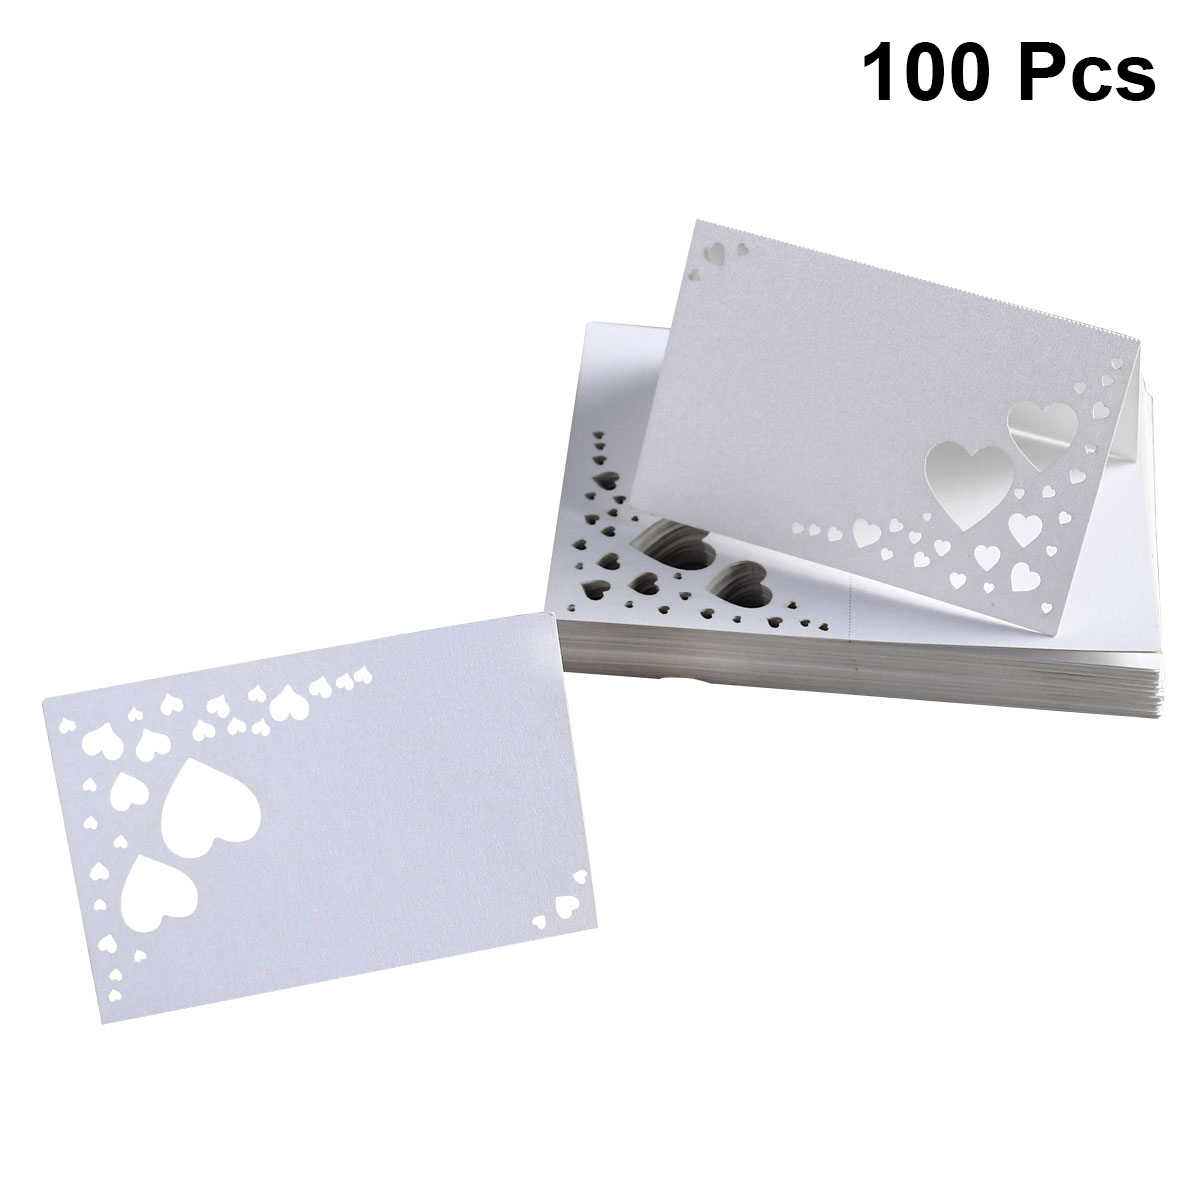 50pcs/lot Laser Cut Table Name Cards Place Cards Guest Names Mark Cards  Wedding Decoration Wedding Favors Event Party Supplies name card name place  cardcard lot - AliExpress